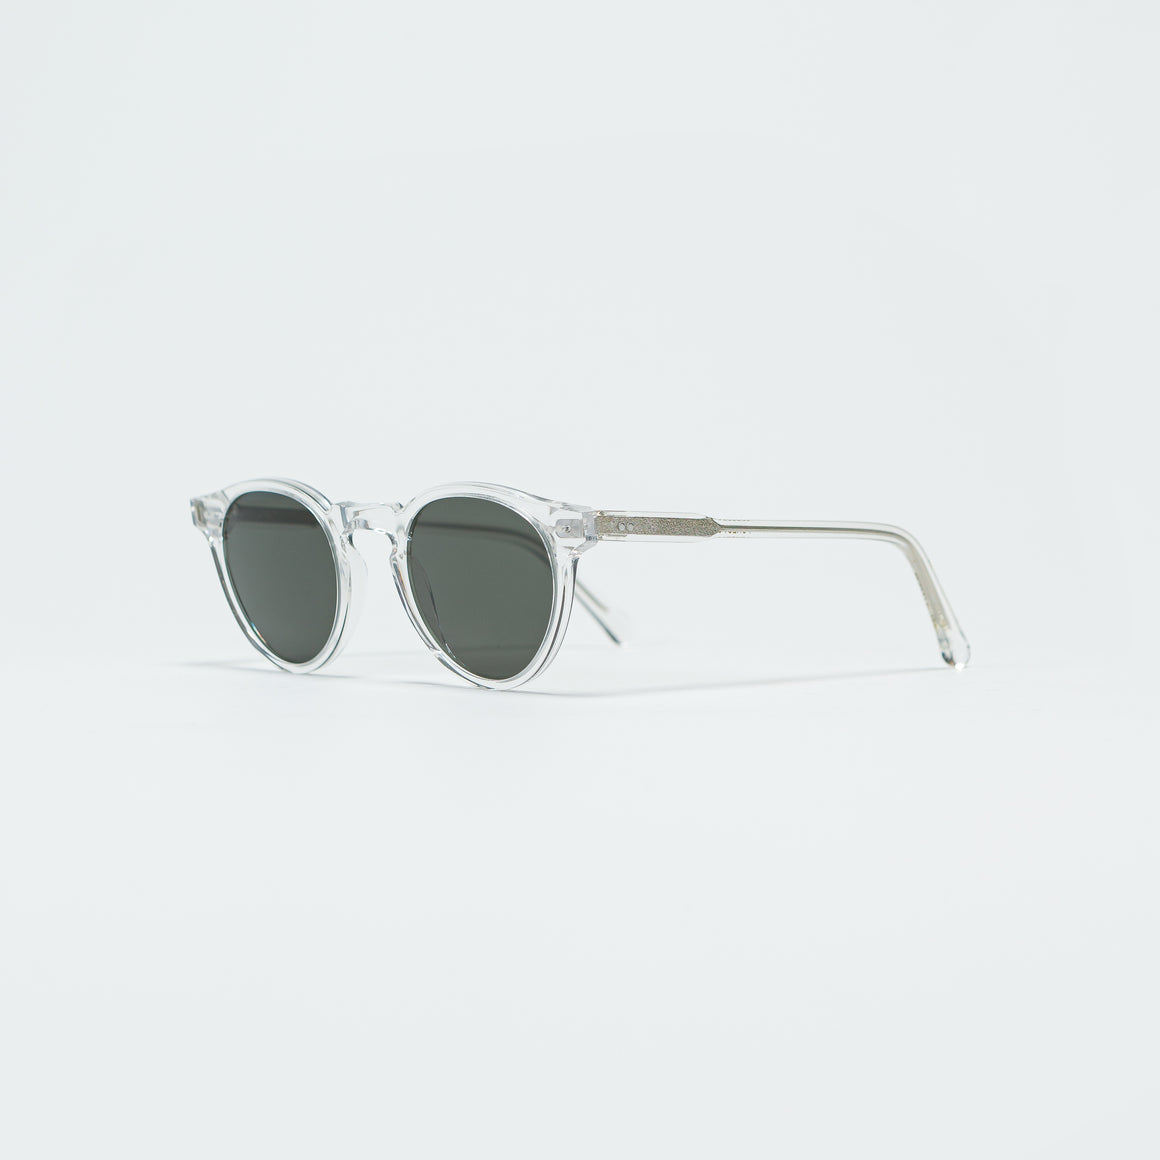 Monokel Eyewear - Forest - Crystal/Green Solid - Up There